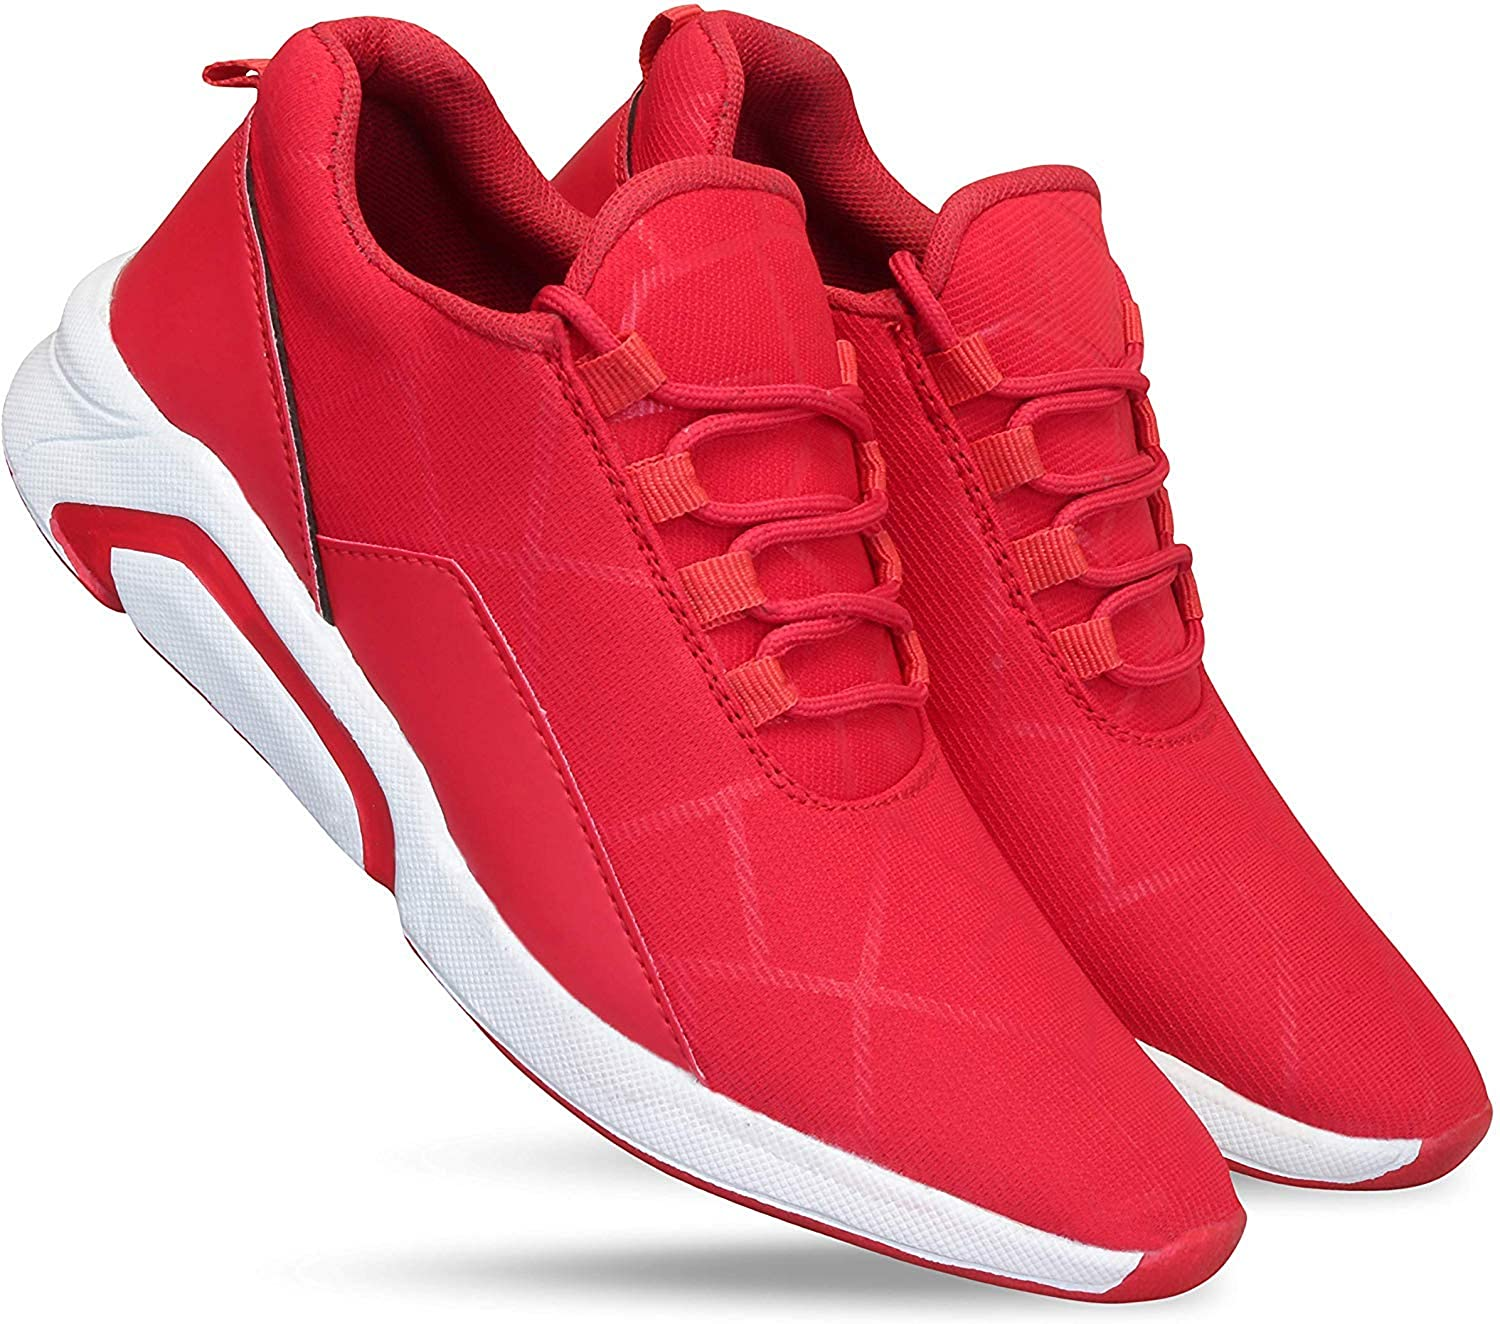 red casual sneakers